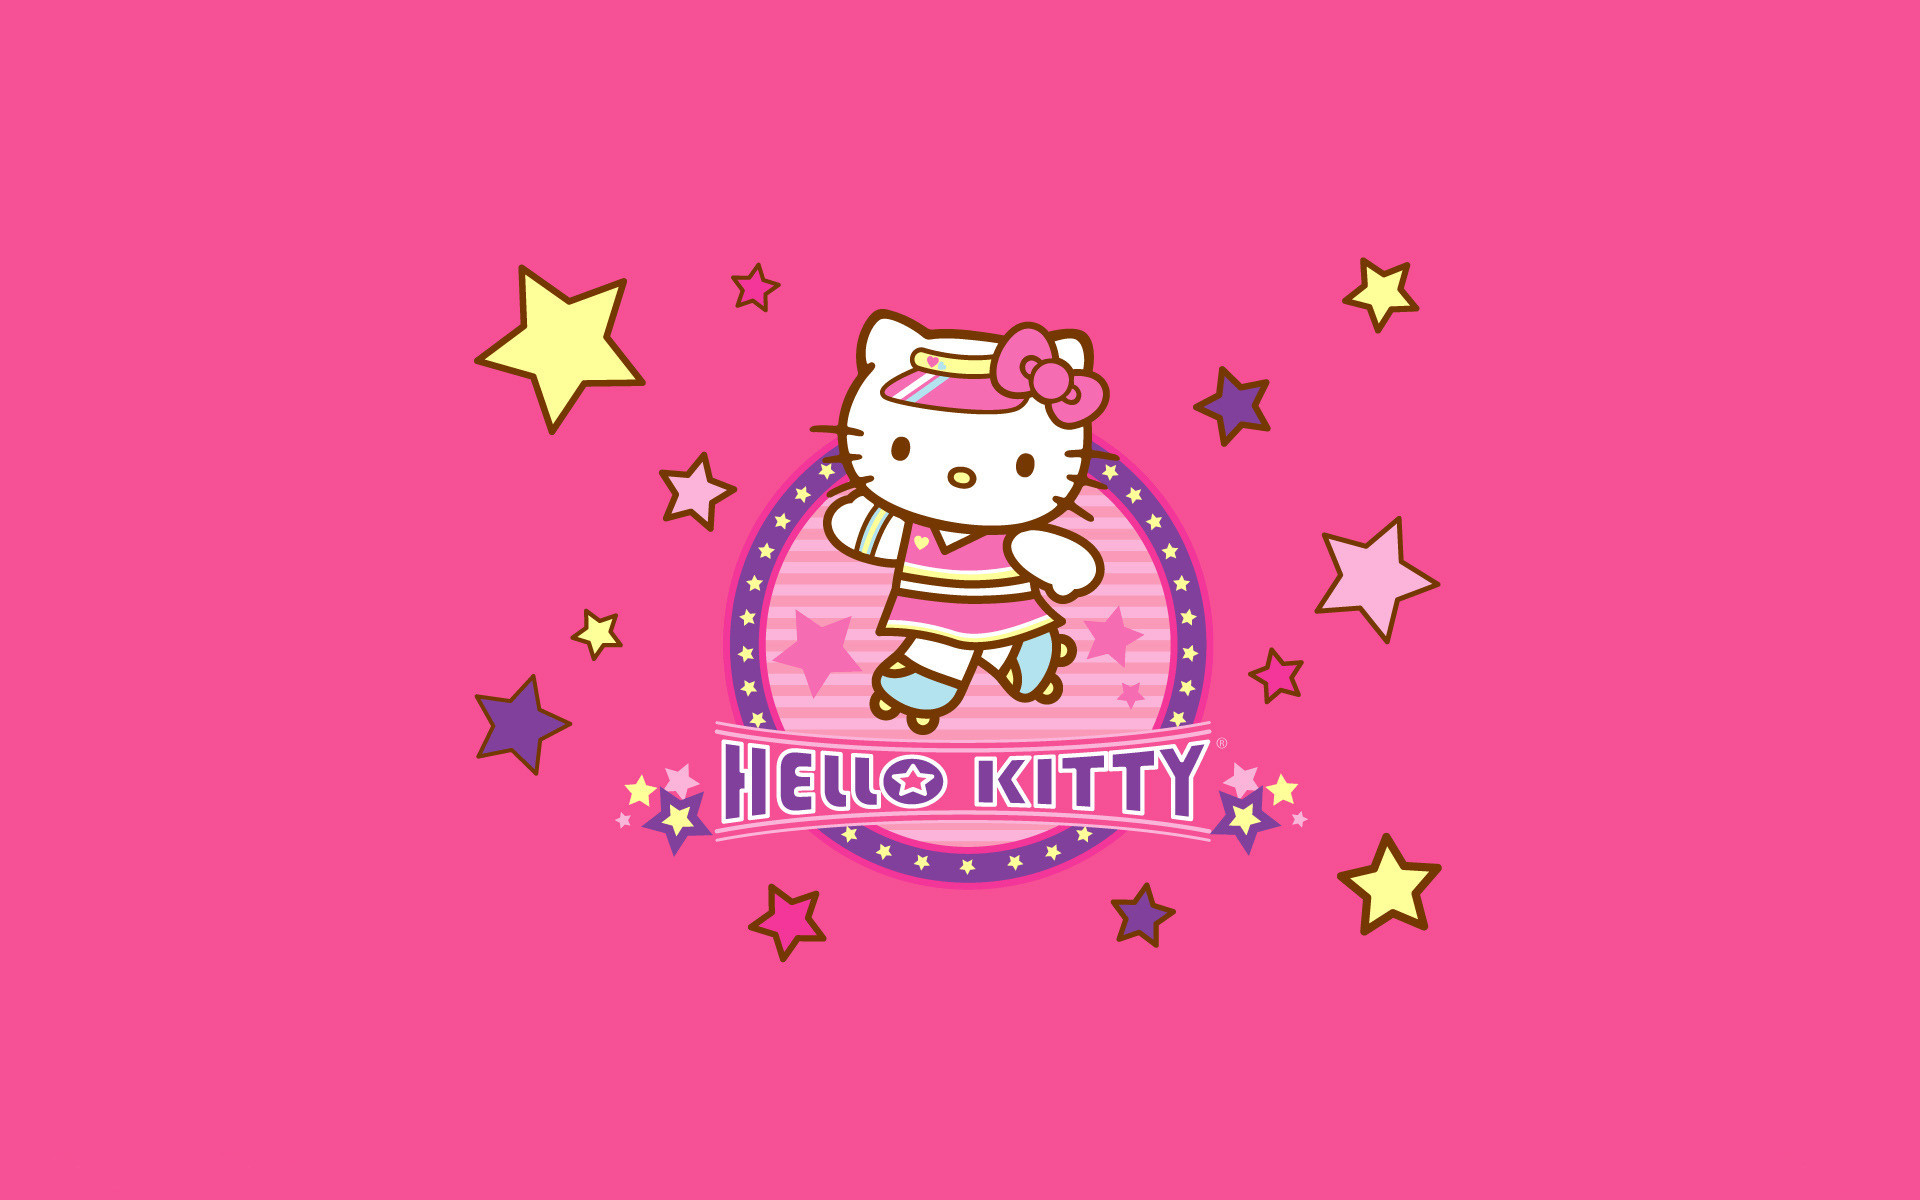 1920x1200 Hello Kitty wallpaper - 174283